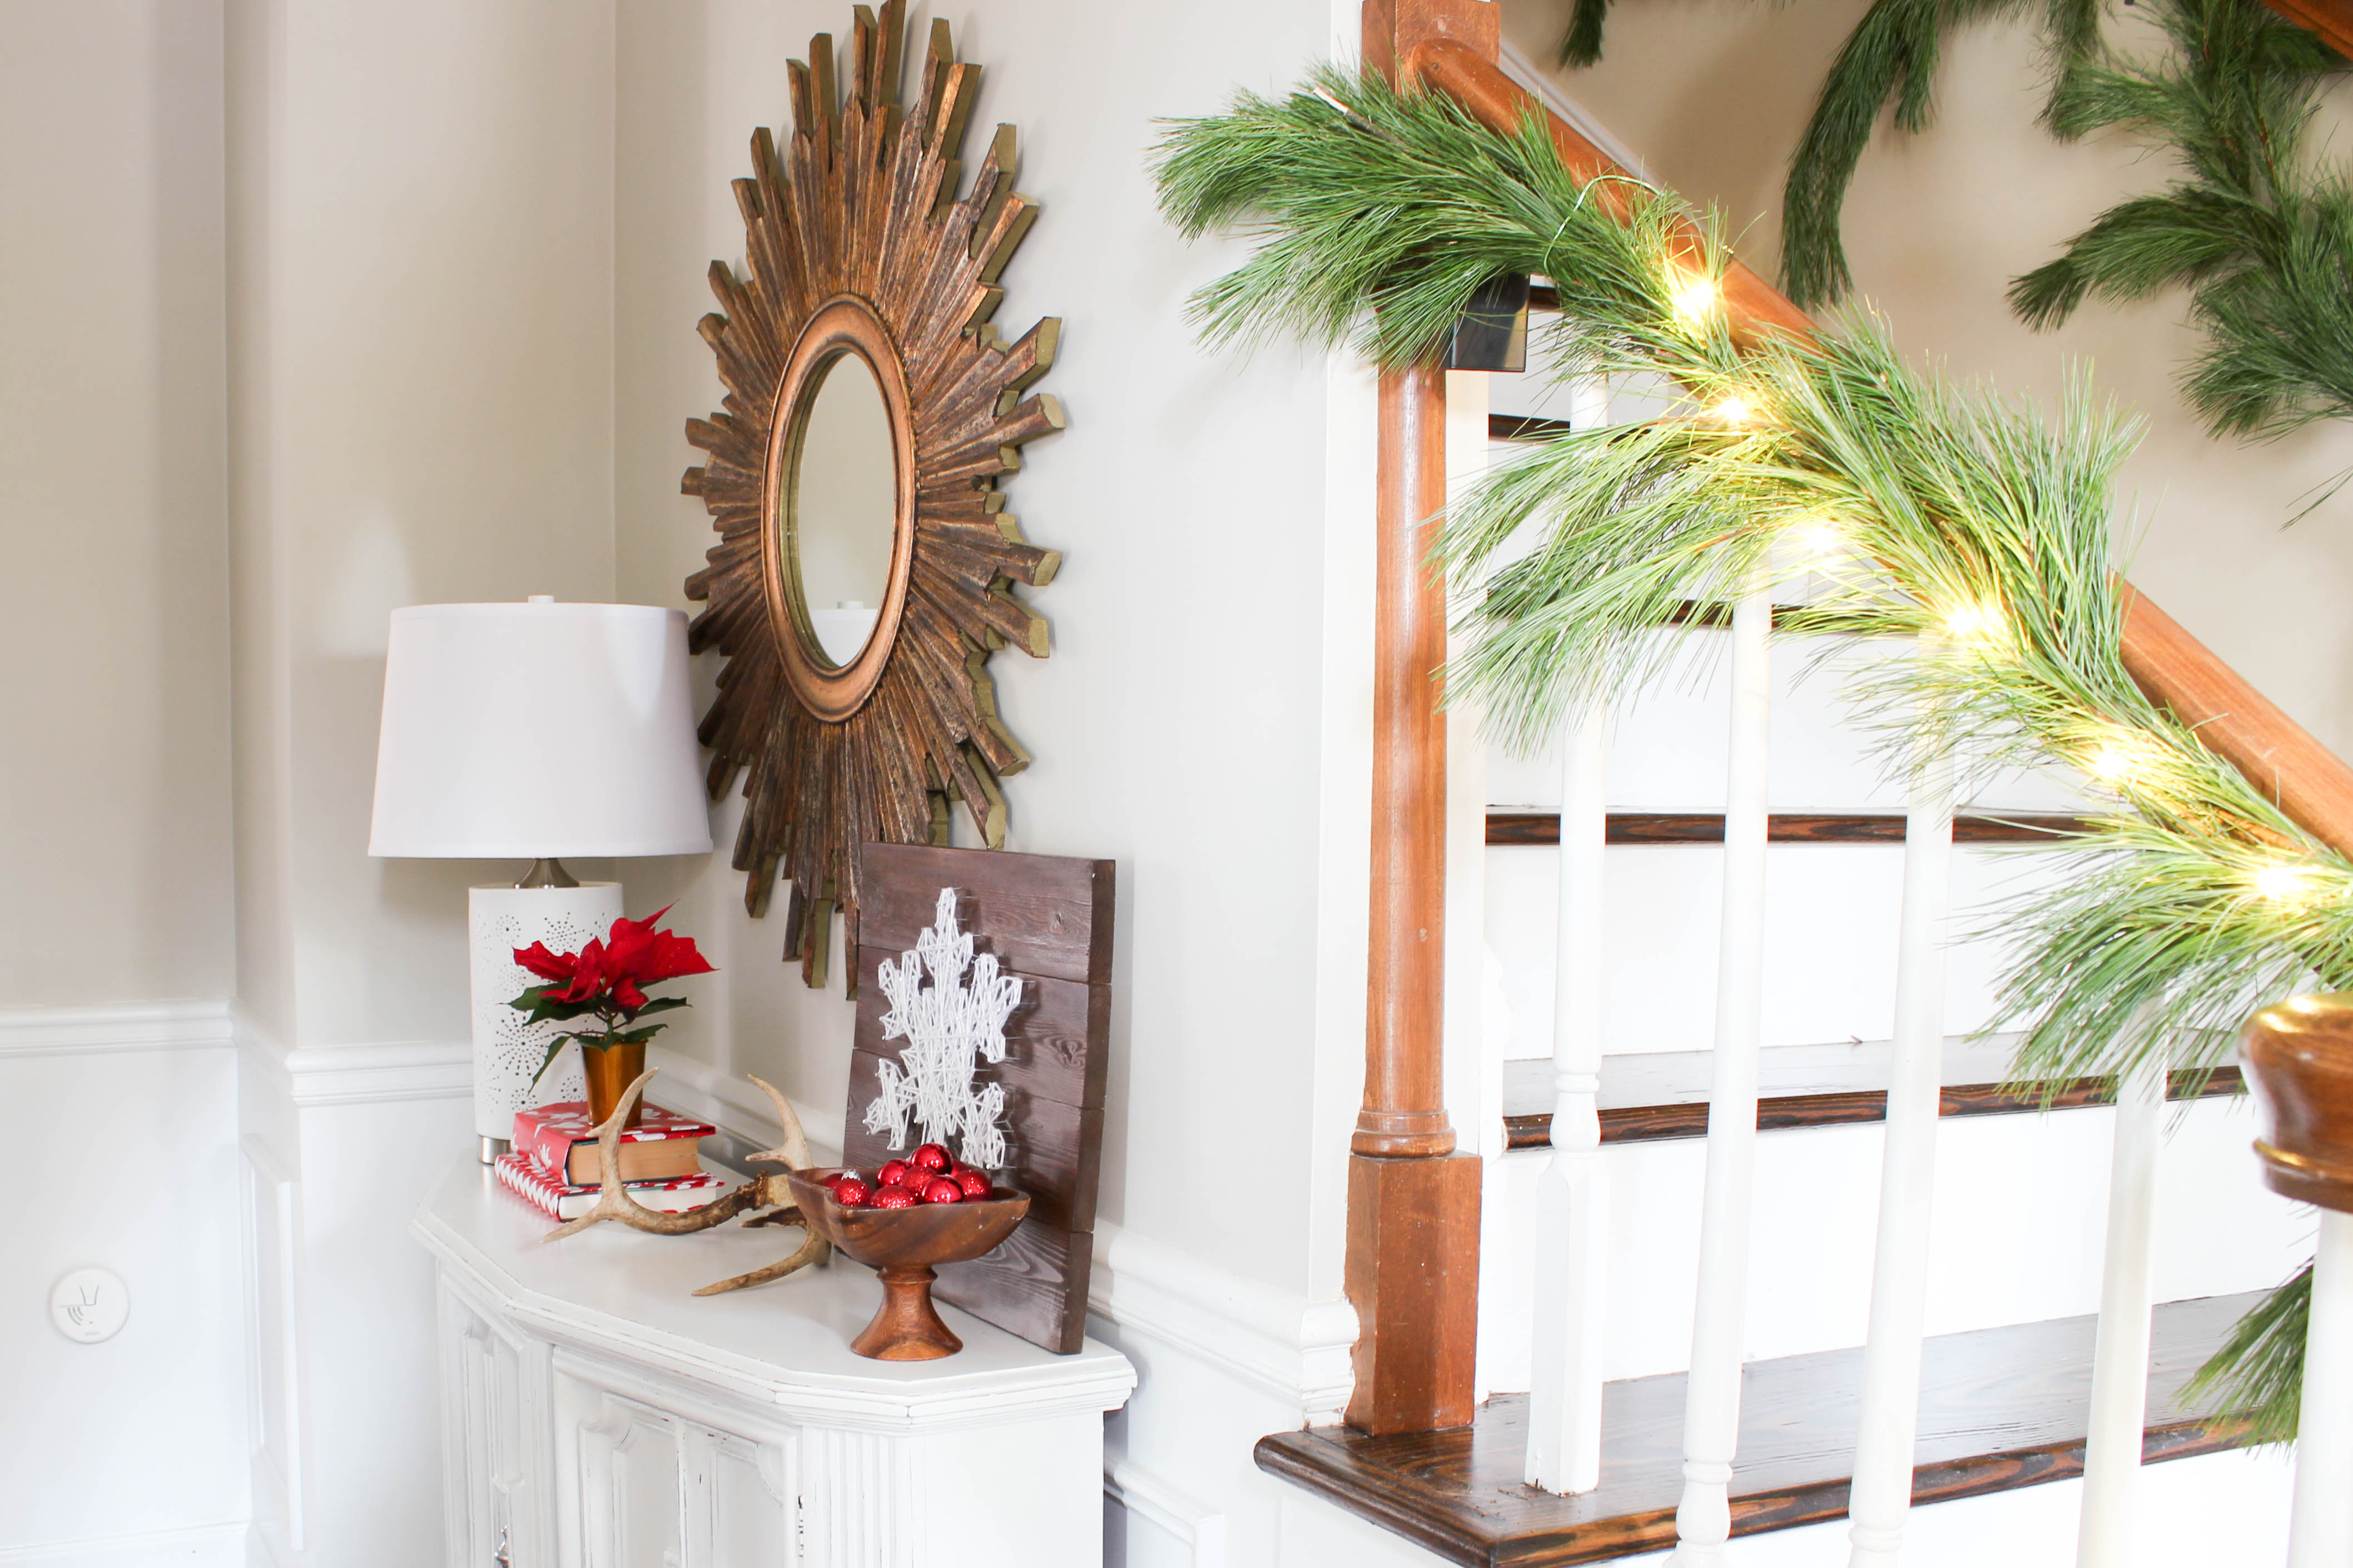 home for the holidays design challenge entryway reveal erin spain home for the holidays design challenge entryway reveal